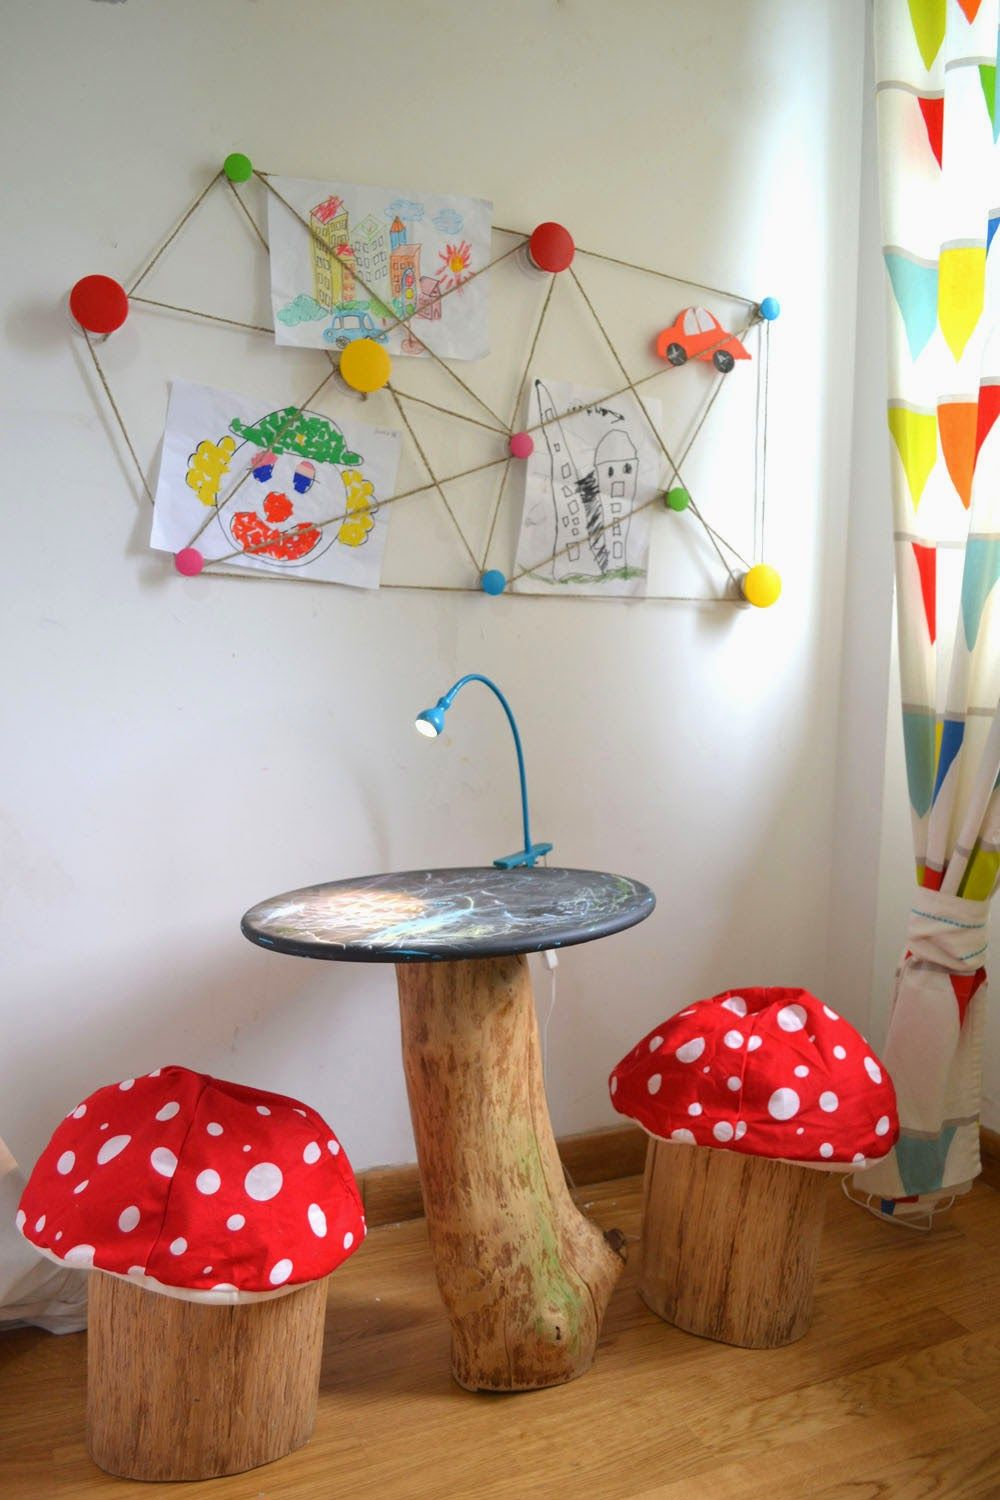 33 Clever And Unexpected Uses For Ikea Products. Mushroom ChairNeutral Kids ... & 33 Clever And Unexpected Uses For Ikea Products | Ikea hack ...